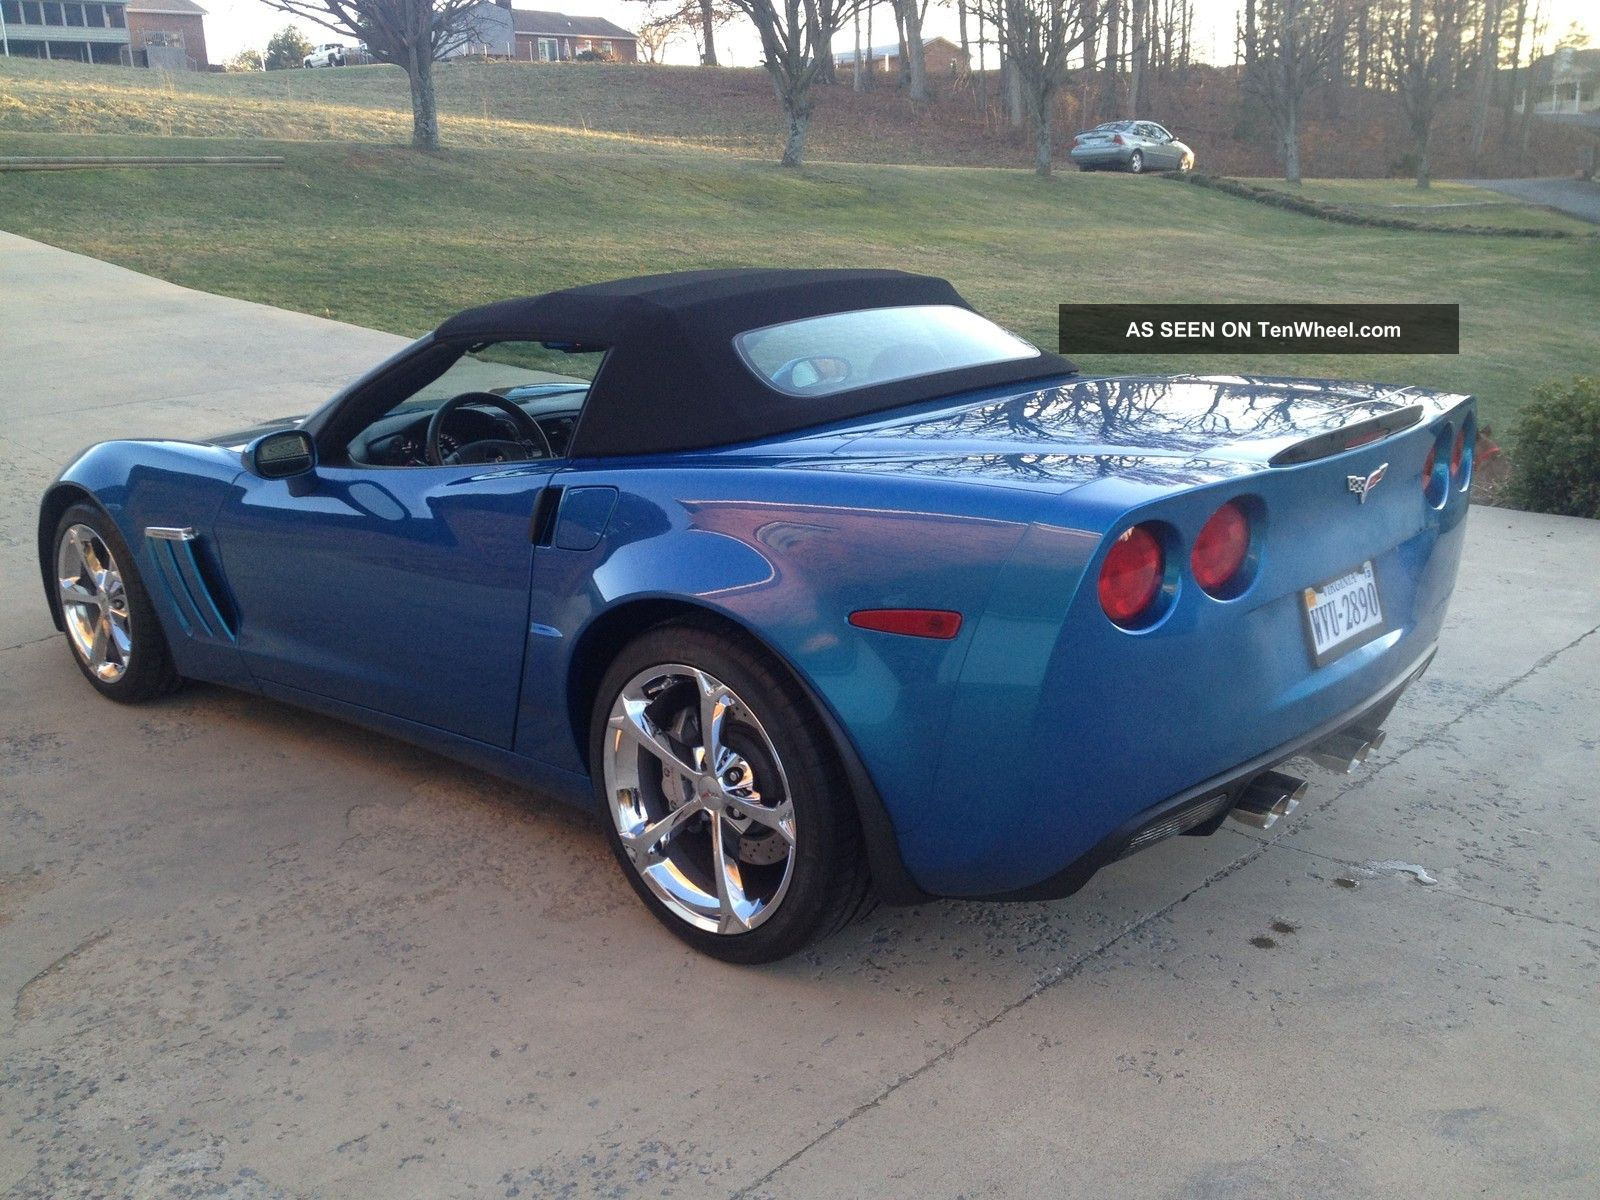 2013 chevy corvette grand sport convertible features holidays oo. Black Bedroom Furniture Sets. Home Design Ideas